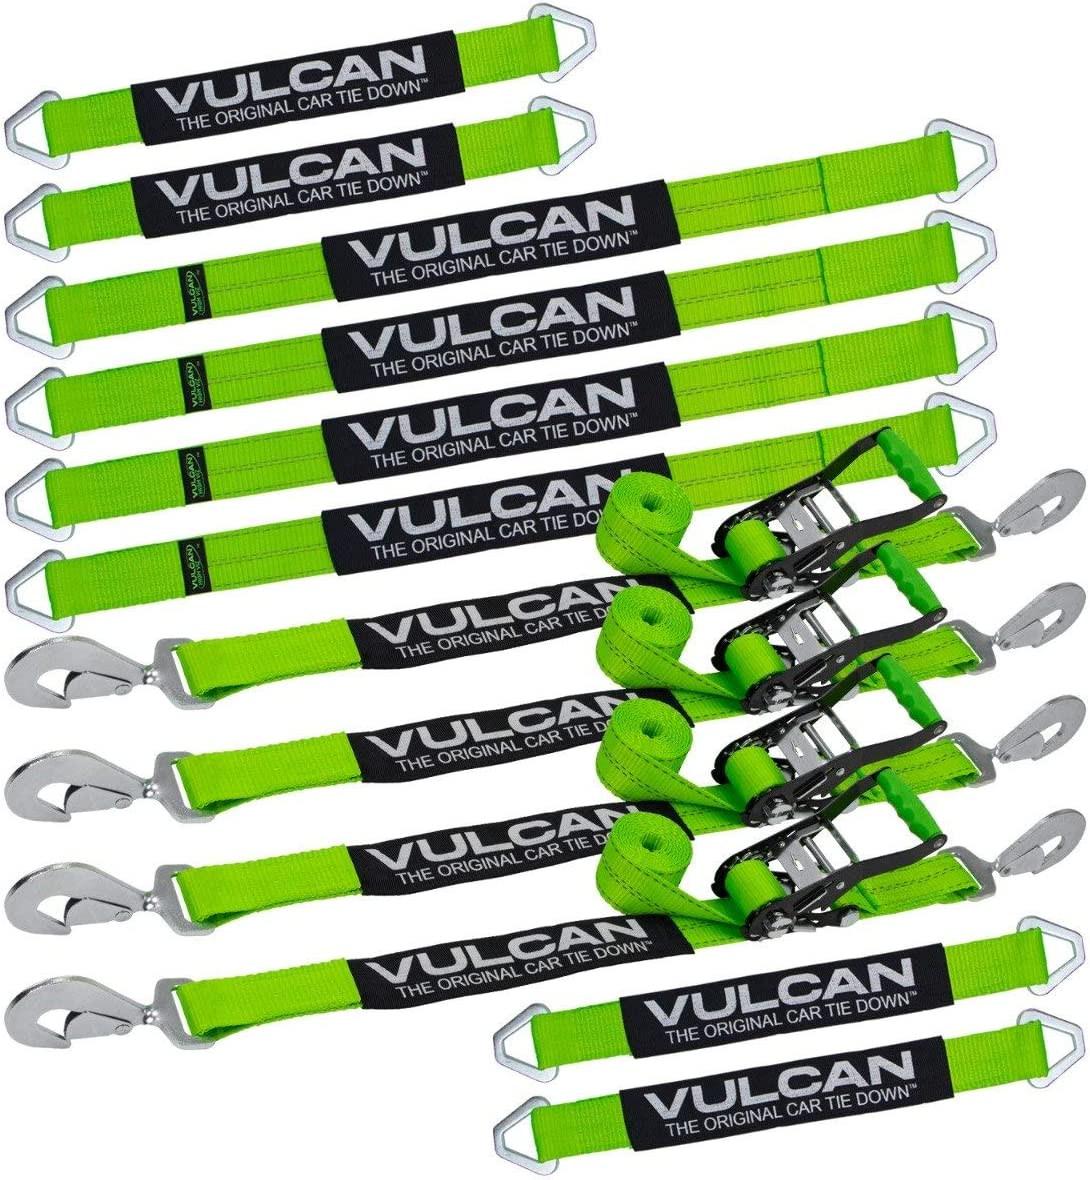 4 PROSeries 4 4 and 22 Axle Straps, VULCAN Complete Axle Strap Tie Down Kit with Snap Hook Ratchet Straps 36 Axle Straps 8 Snap Hook Ratchet Straps Includes